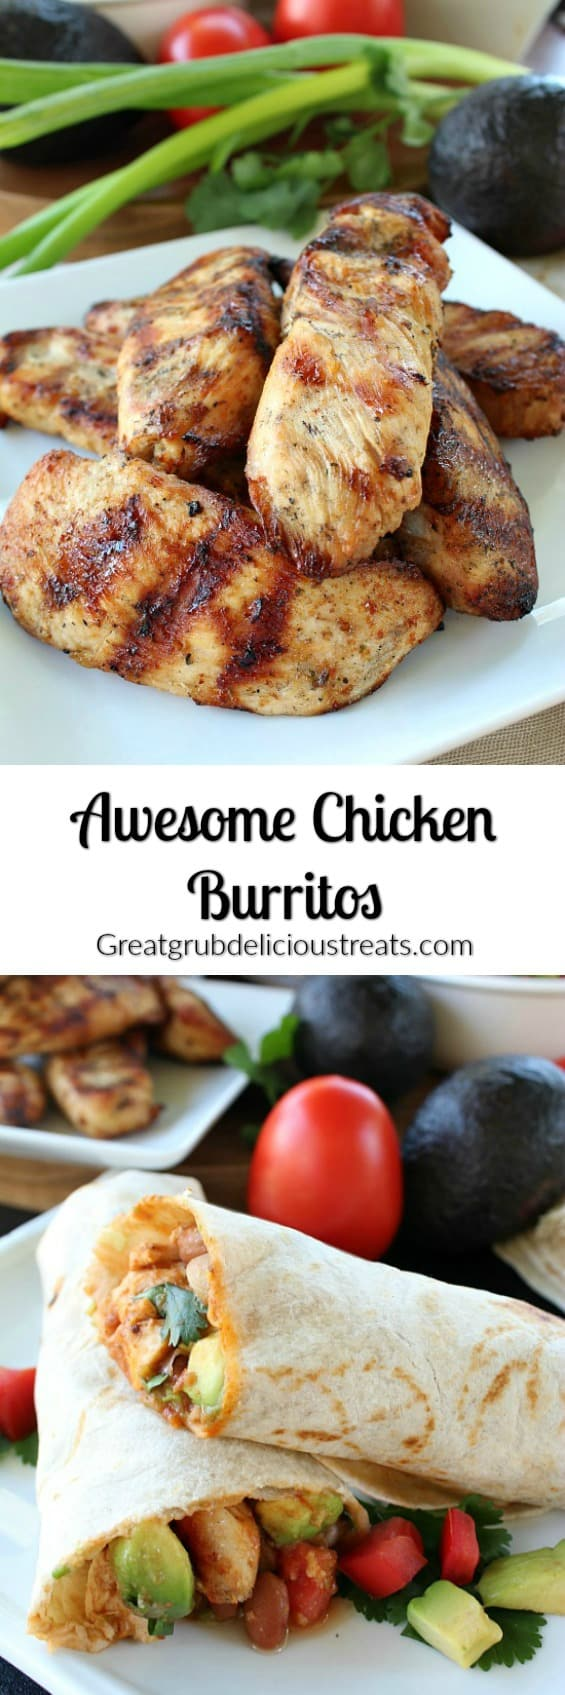 Awesome Chicken Burritos